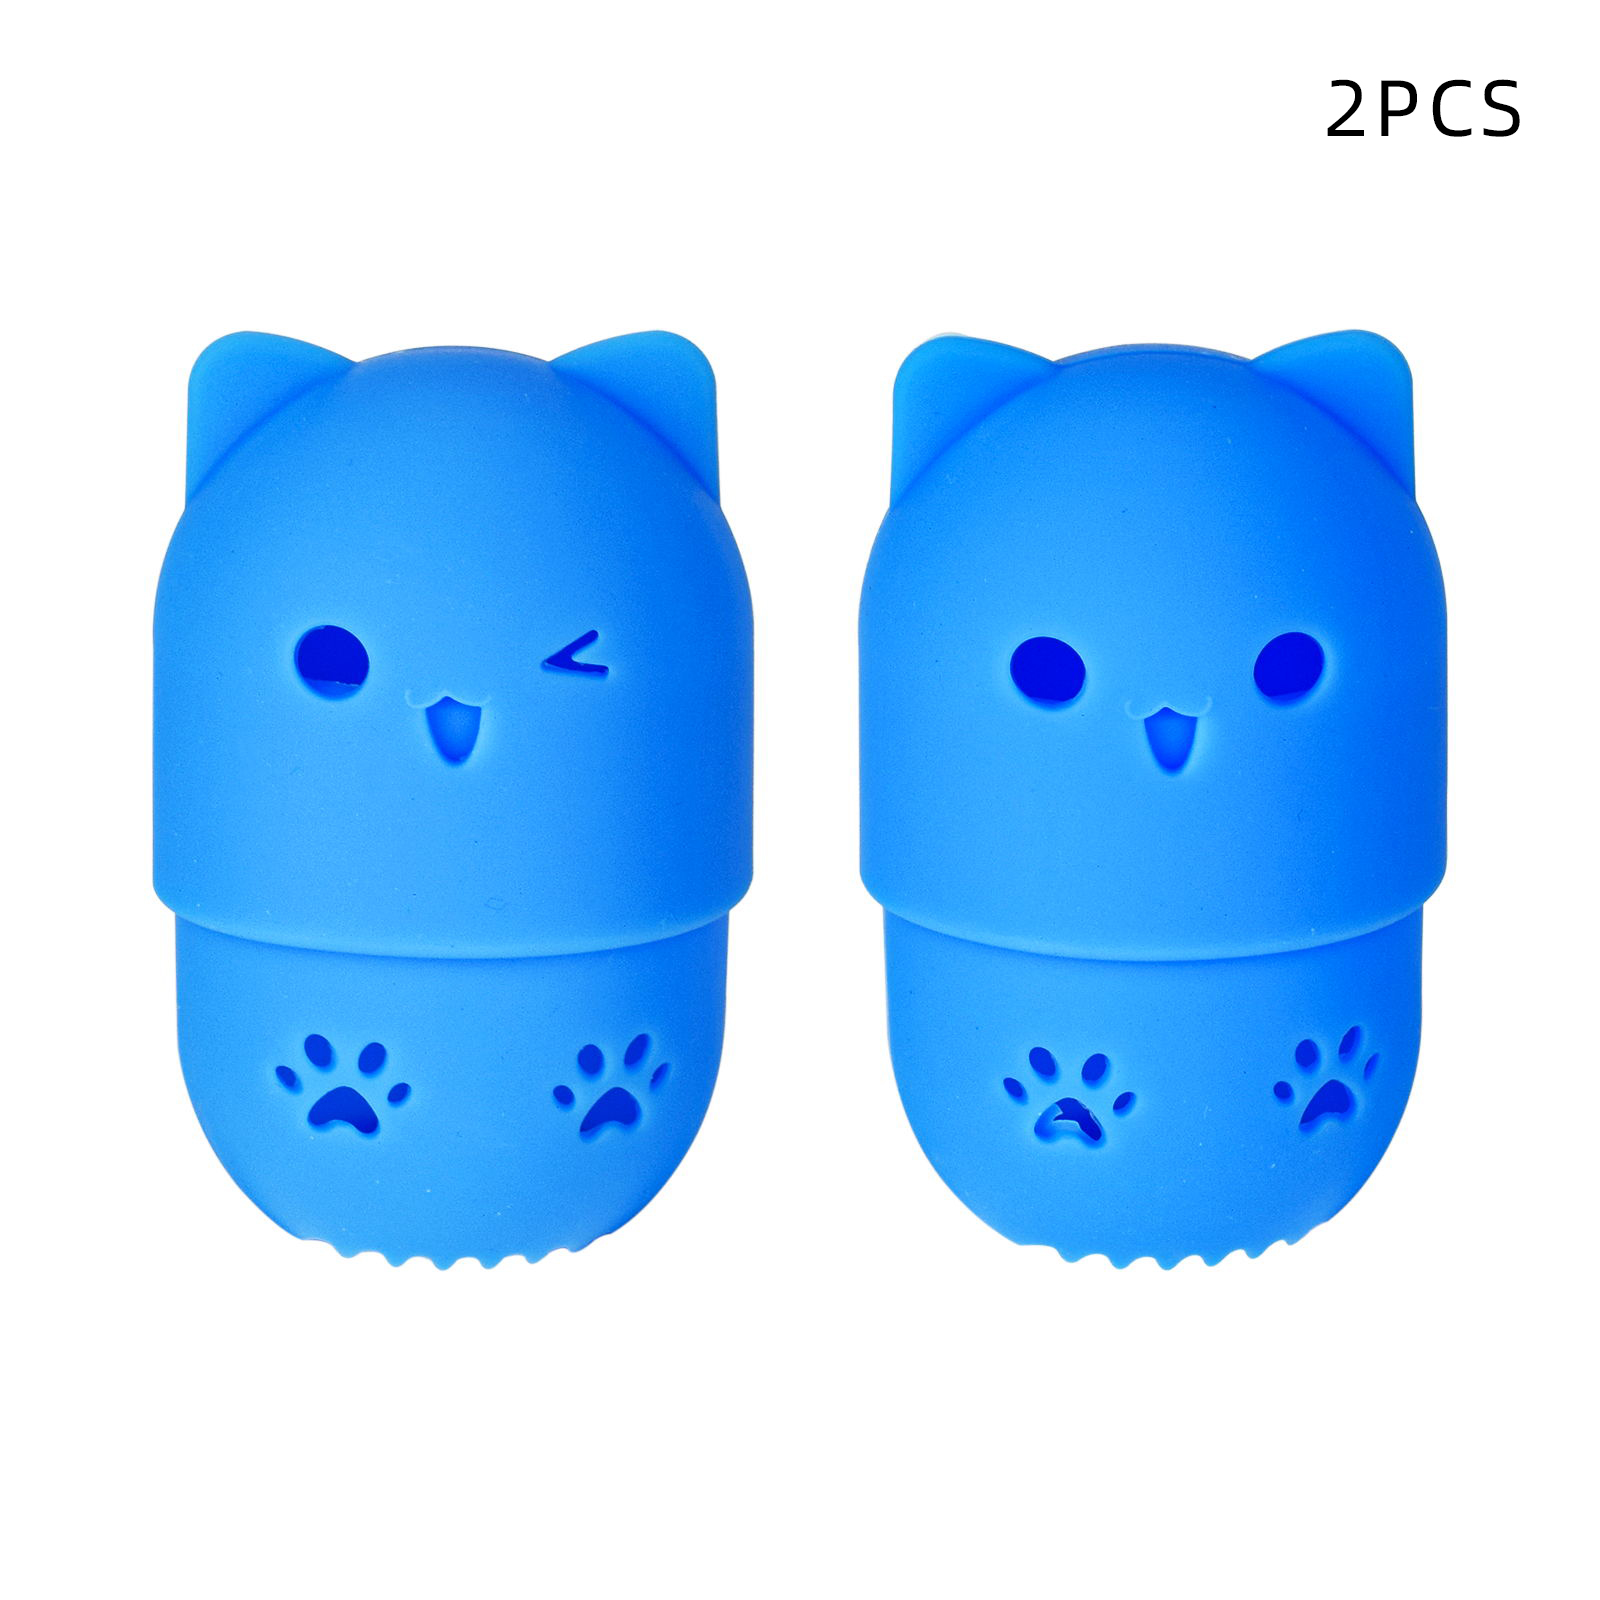 2pcs Beauty Powder Puff Case Silicone Beauty Egg Storage Eggshell Storage Box Protection Cover Case blue